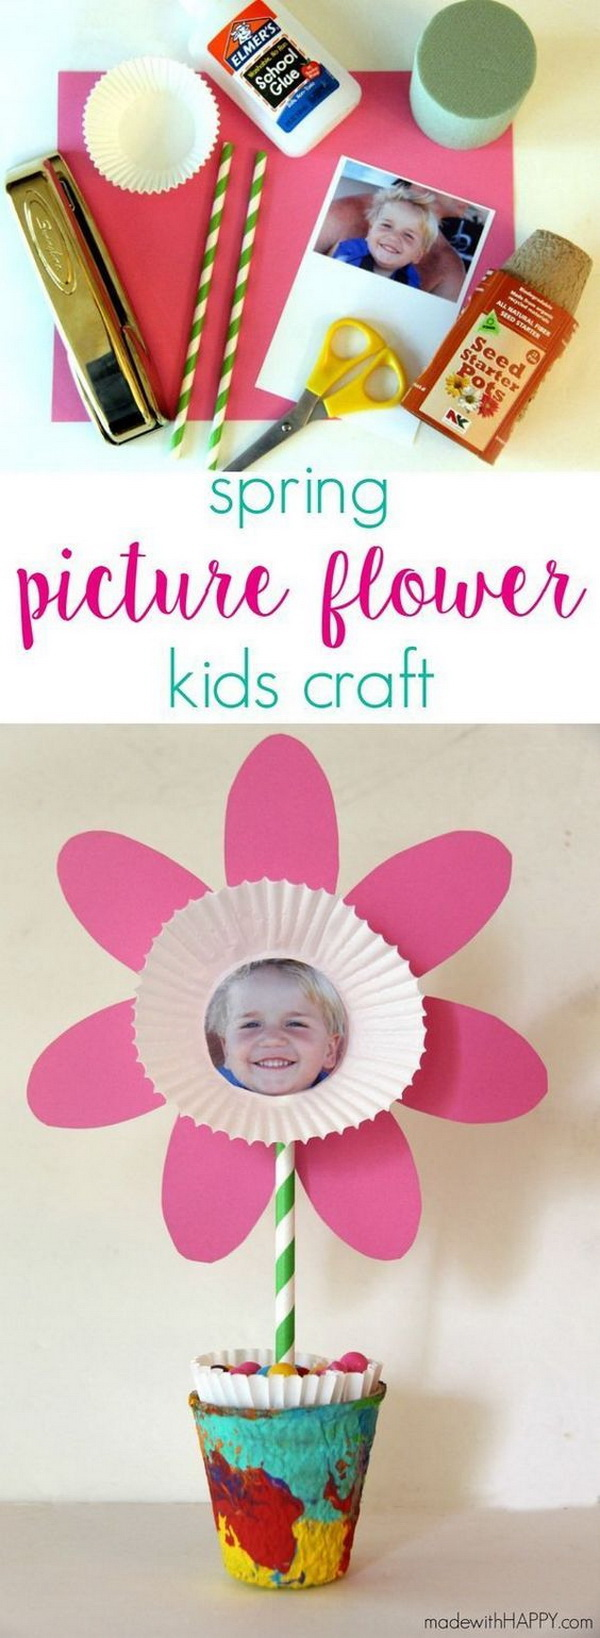 Mother's Day Crafts and gifts: Handmade Spring Picture Flower.